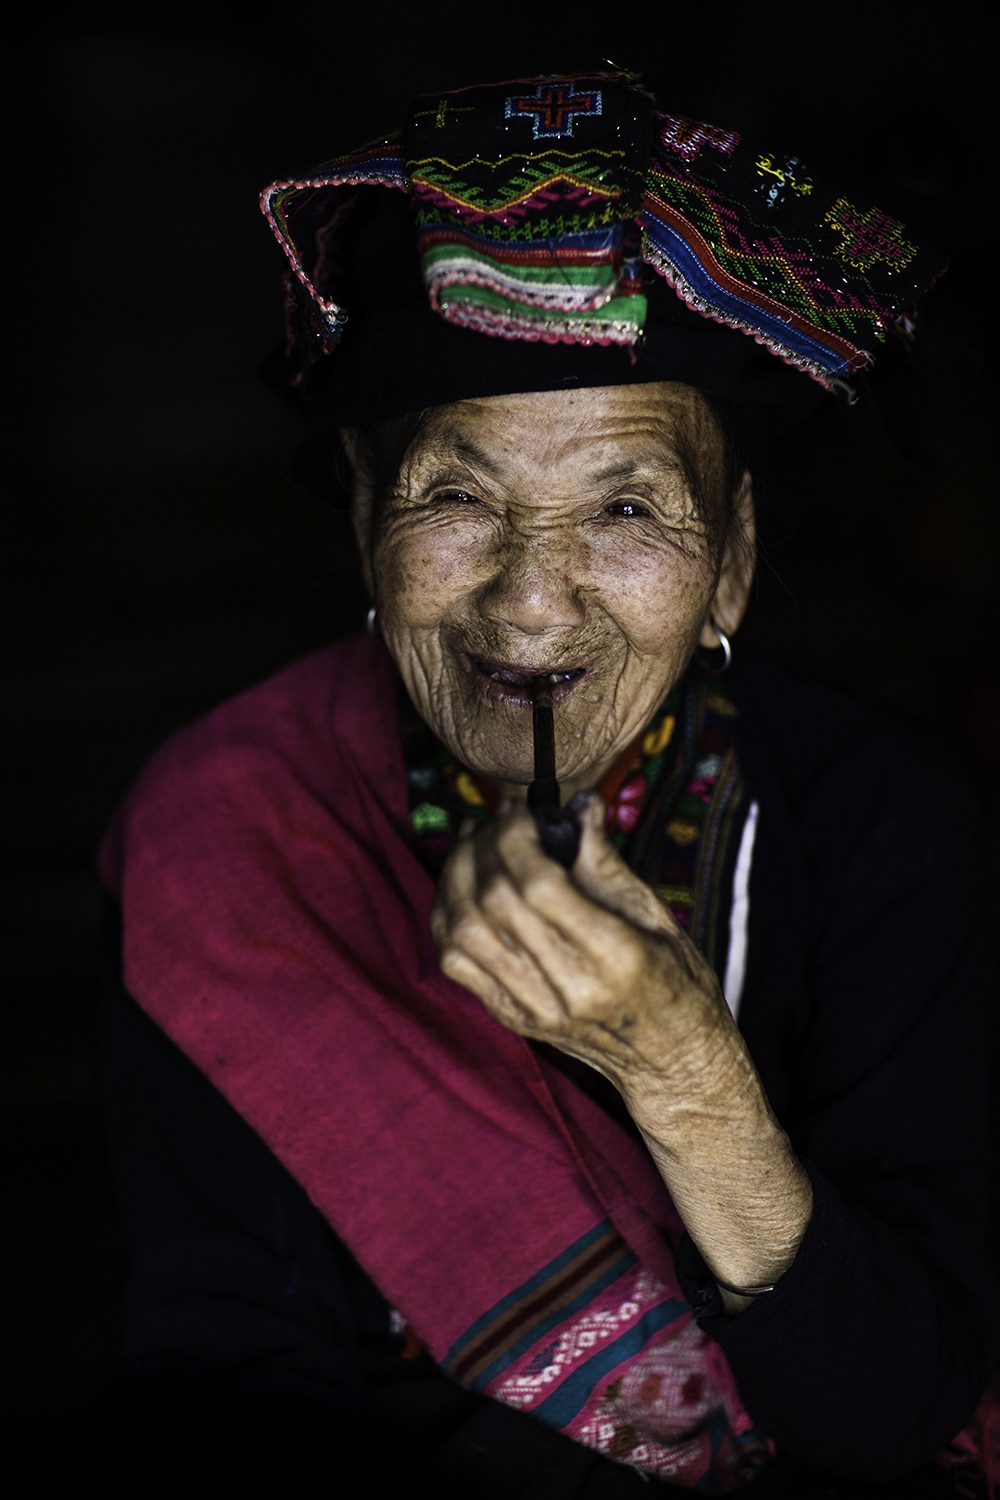 Portrait of woman from Lao Ethnic Tribe in Vietnam by Réhahn